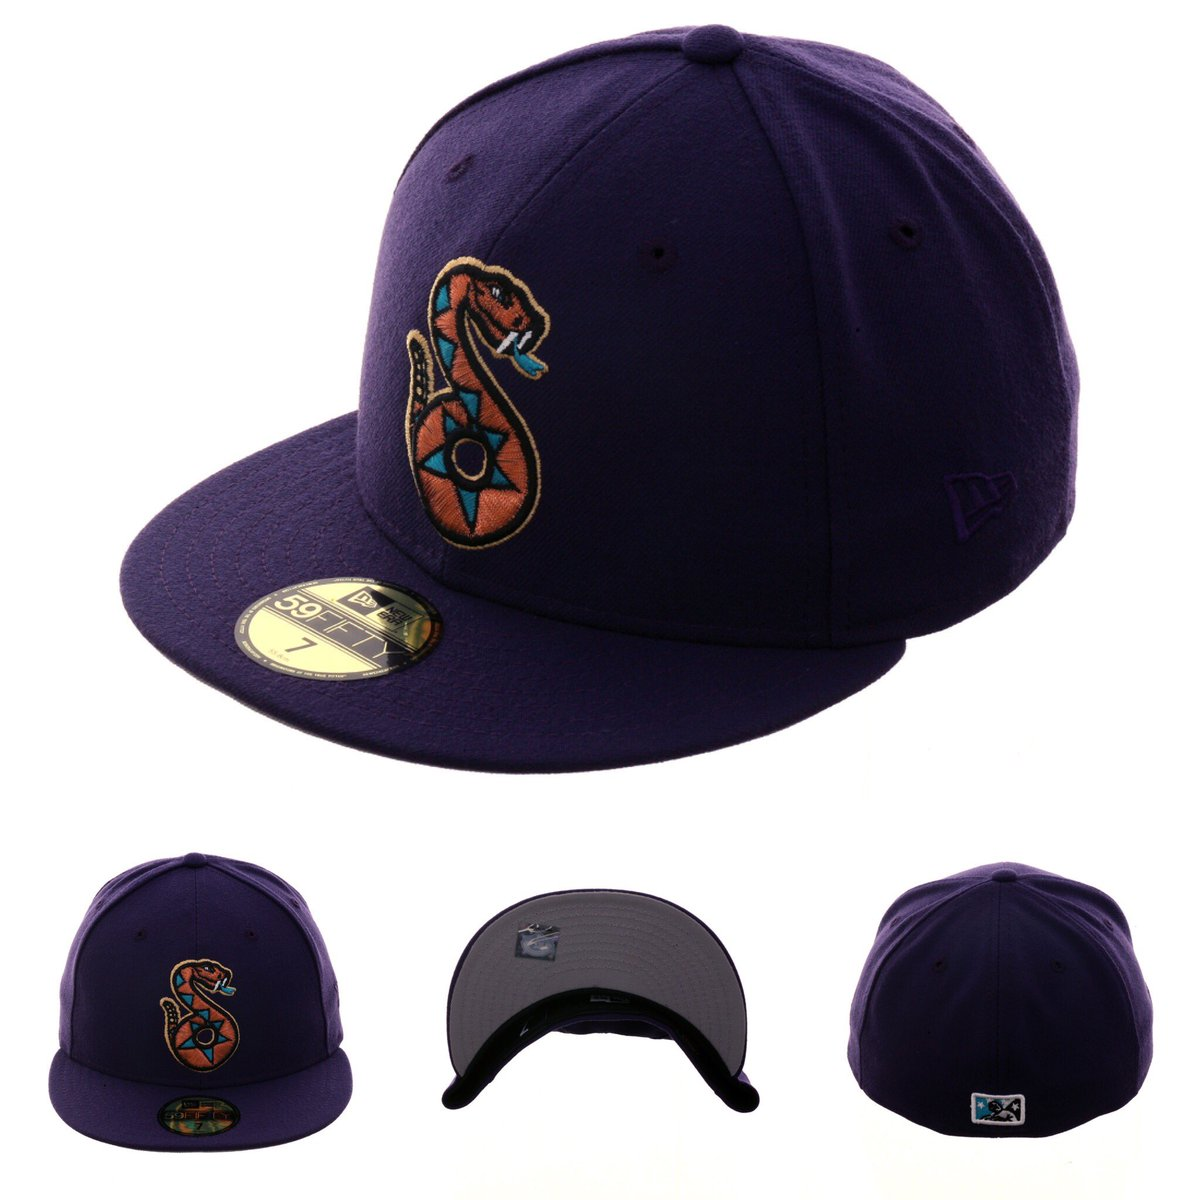 size 40 2c14b bb431 ... https   www.hatclub.com collections new-arrivals-1 products exclusive- new-era-59fifty-tucson-sidewinders-hat-purple …